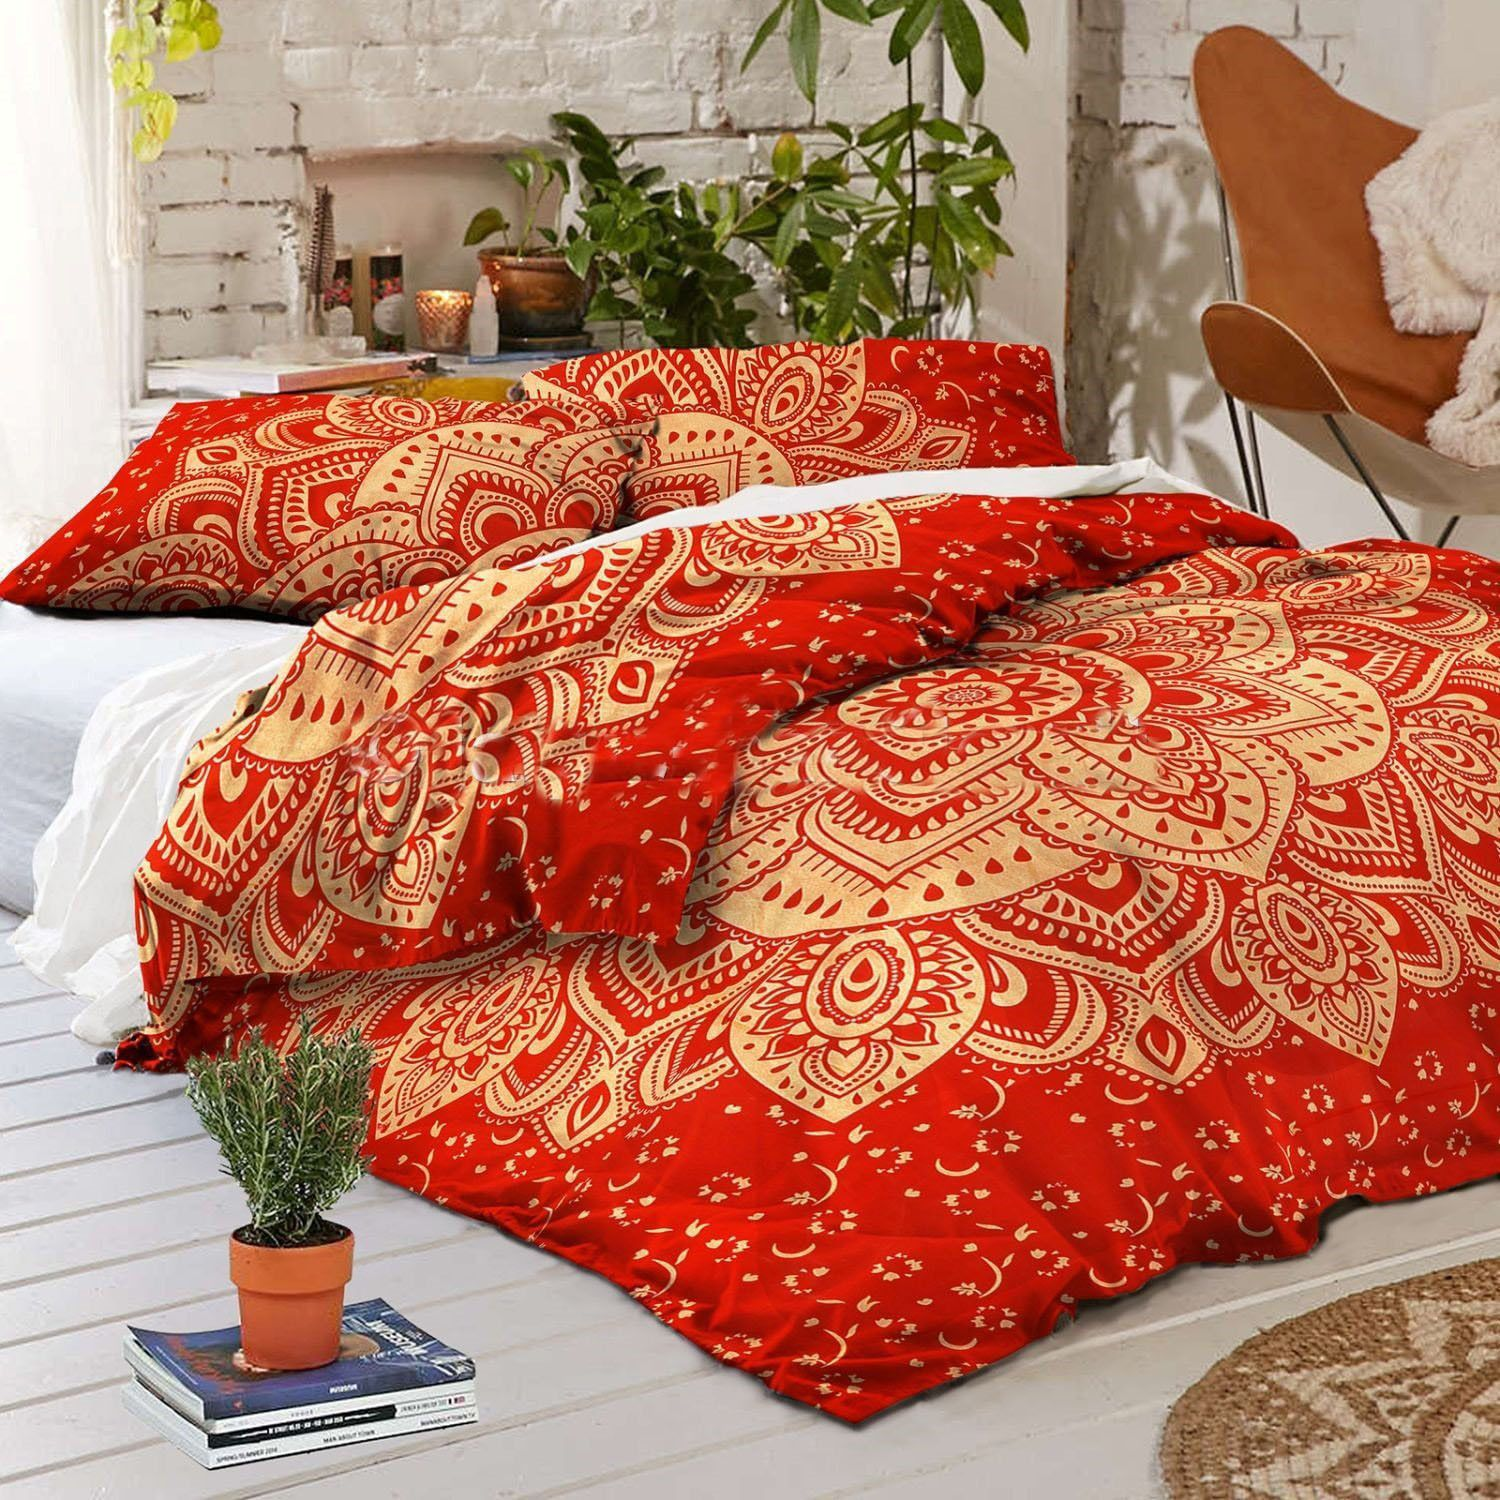 rooms duvet imperial set sale luxury blaze sets product quilt bedding cover complete bohemian